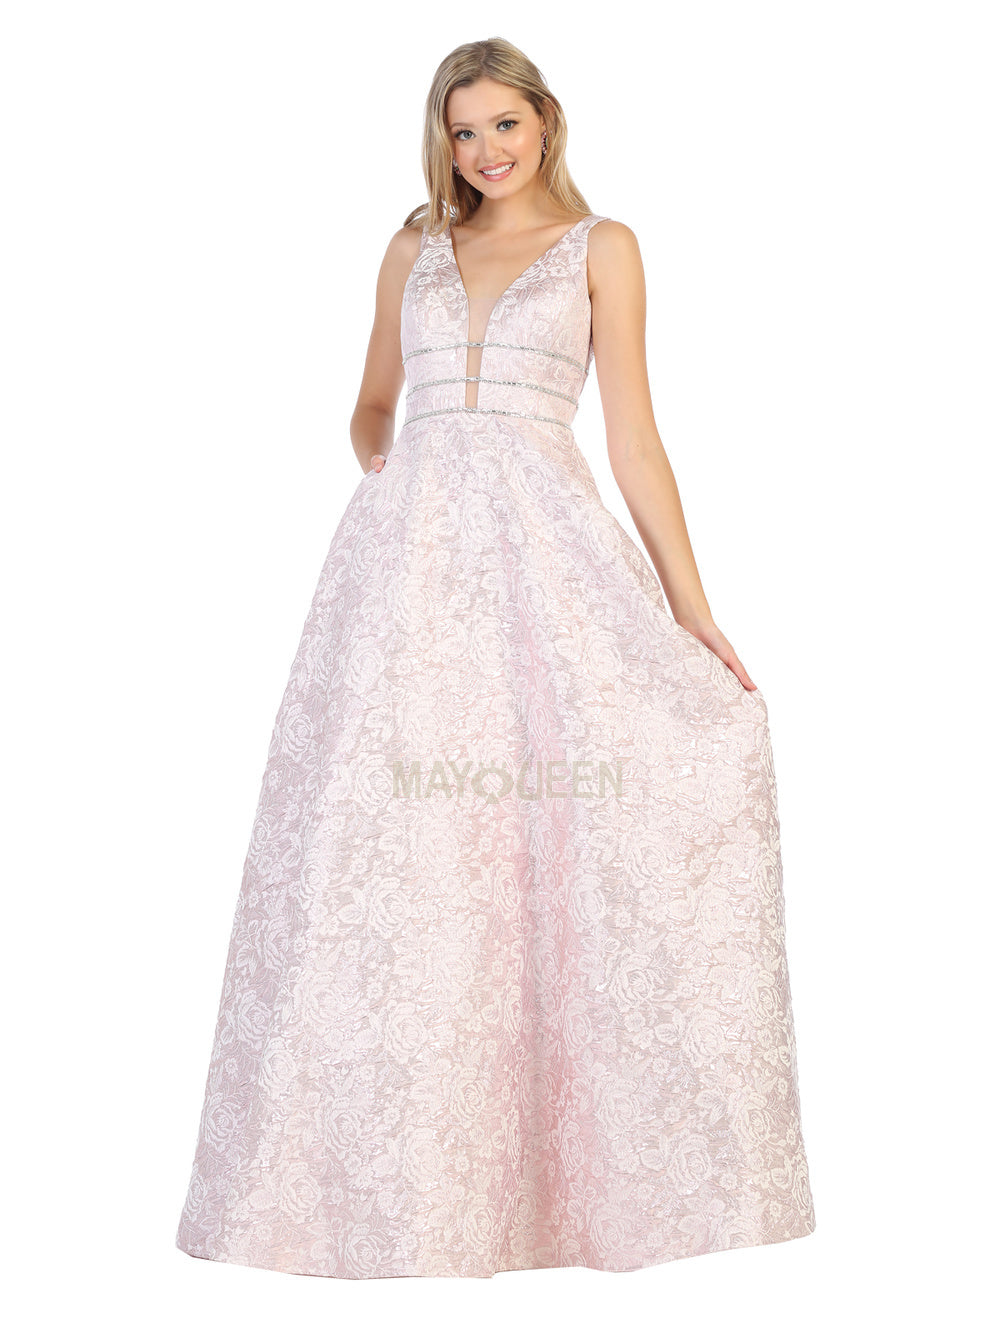 MQ 7787 - A-Line Triple Belted Gown with Deep Illusion V-Neck and Floral Pattern - Diggz Prom